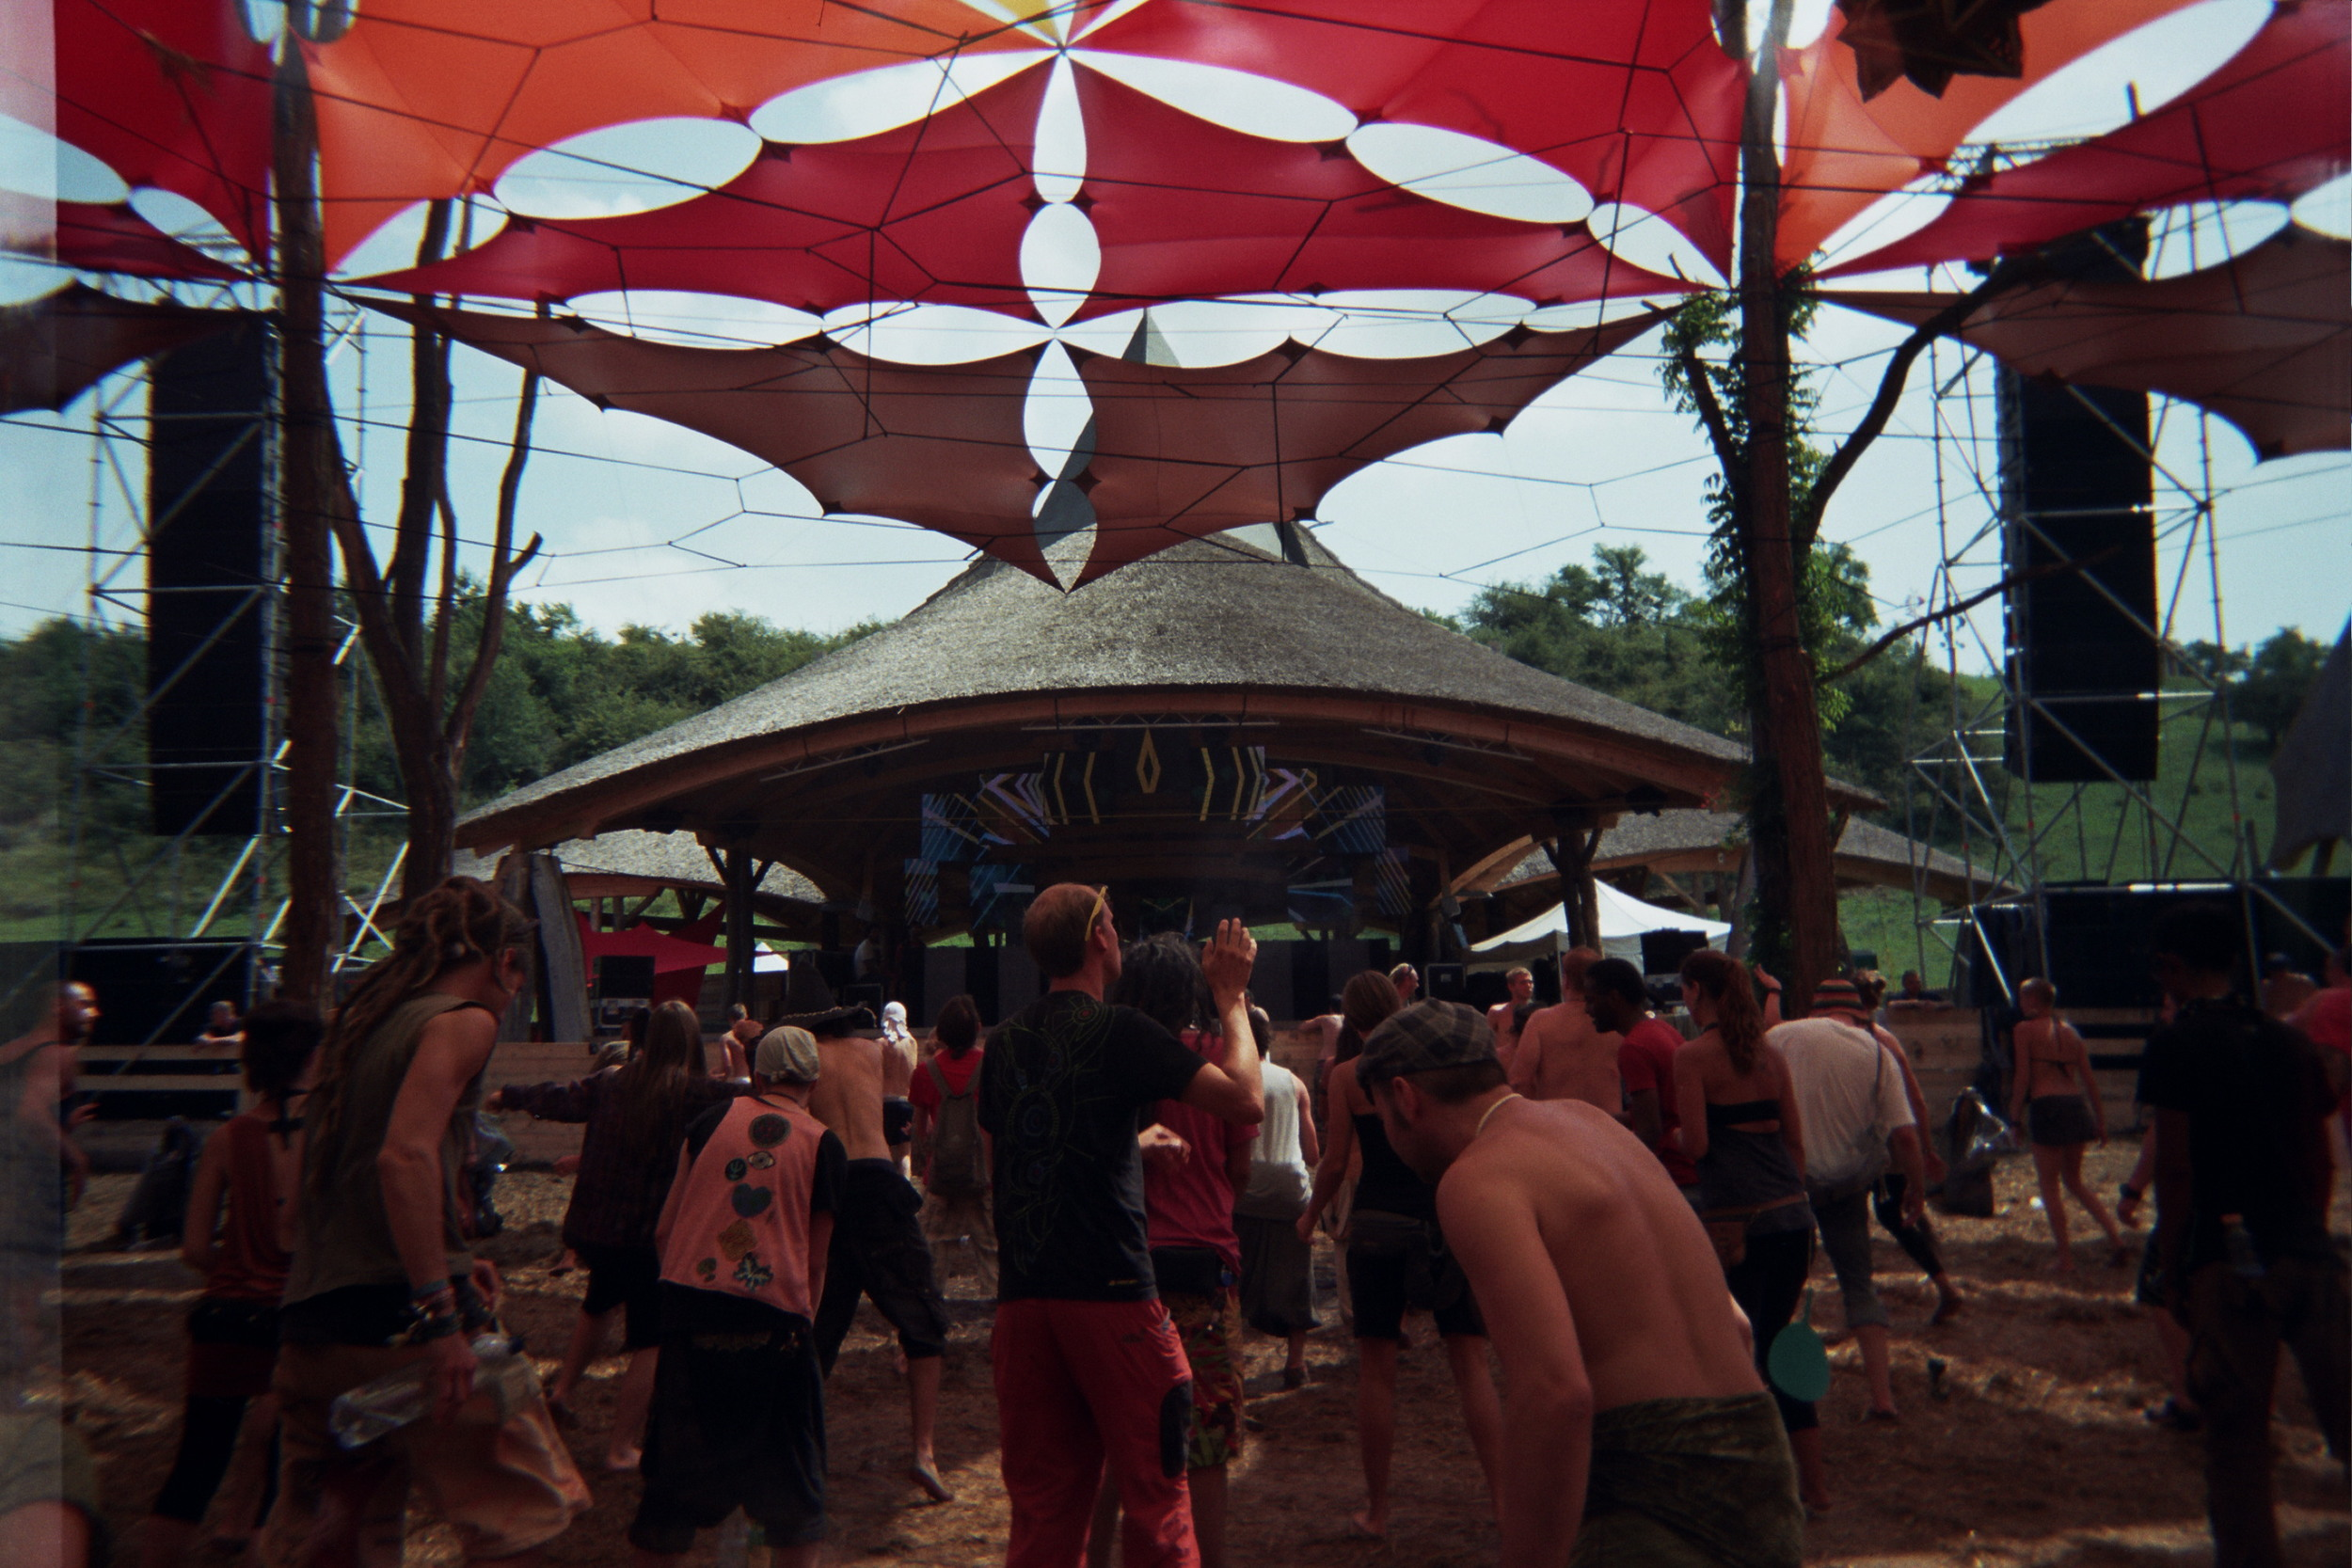 For today, we unite in dance, love and pure power. Ozora is where we find our passion's fire.